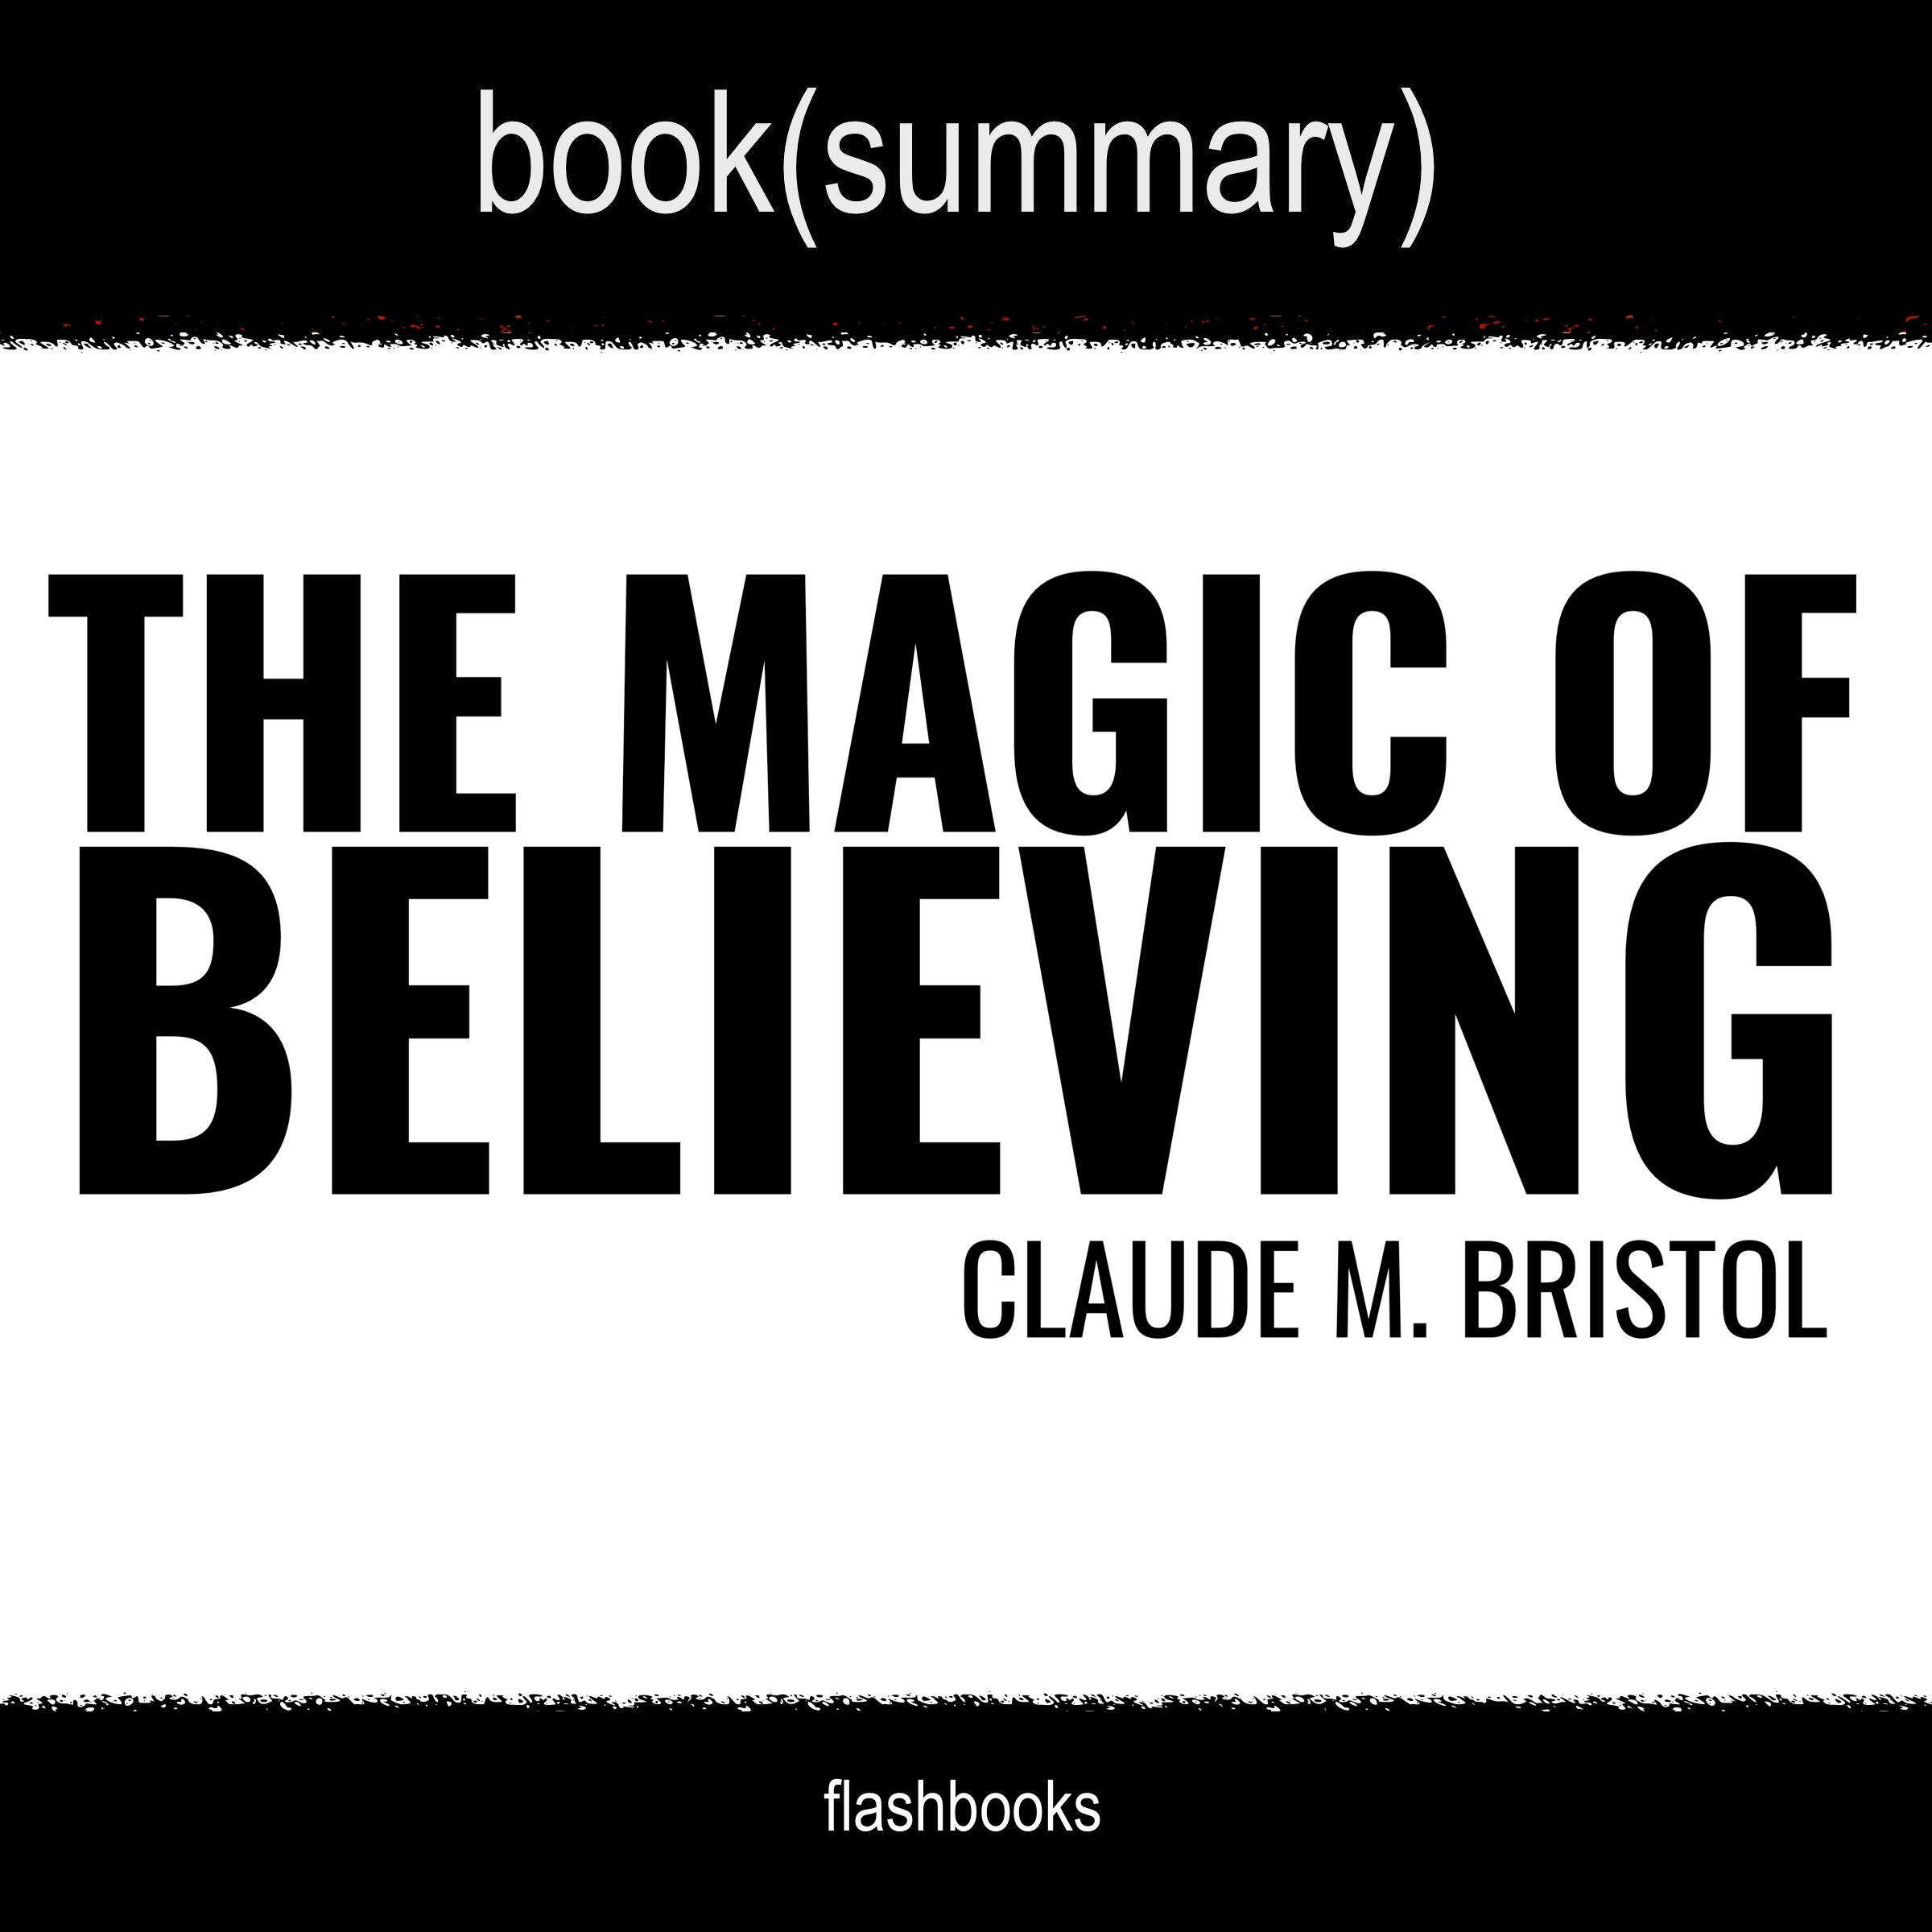 The_Magic_Of_Believing_by_Claude_M_Bristol_Audiobook_Summary